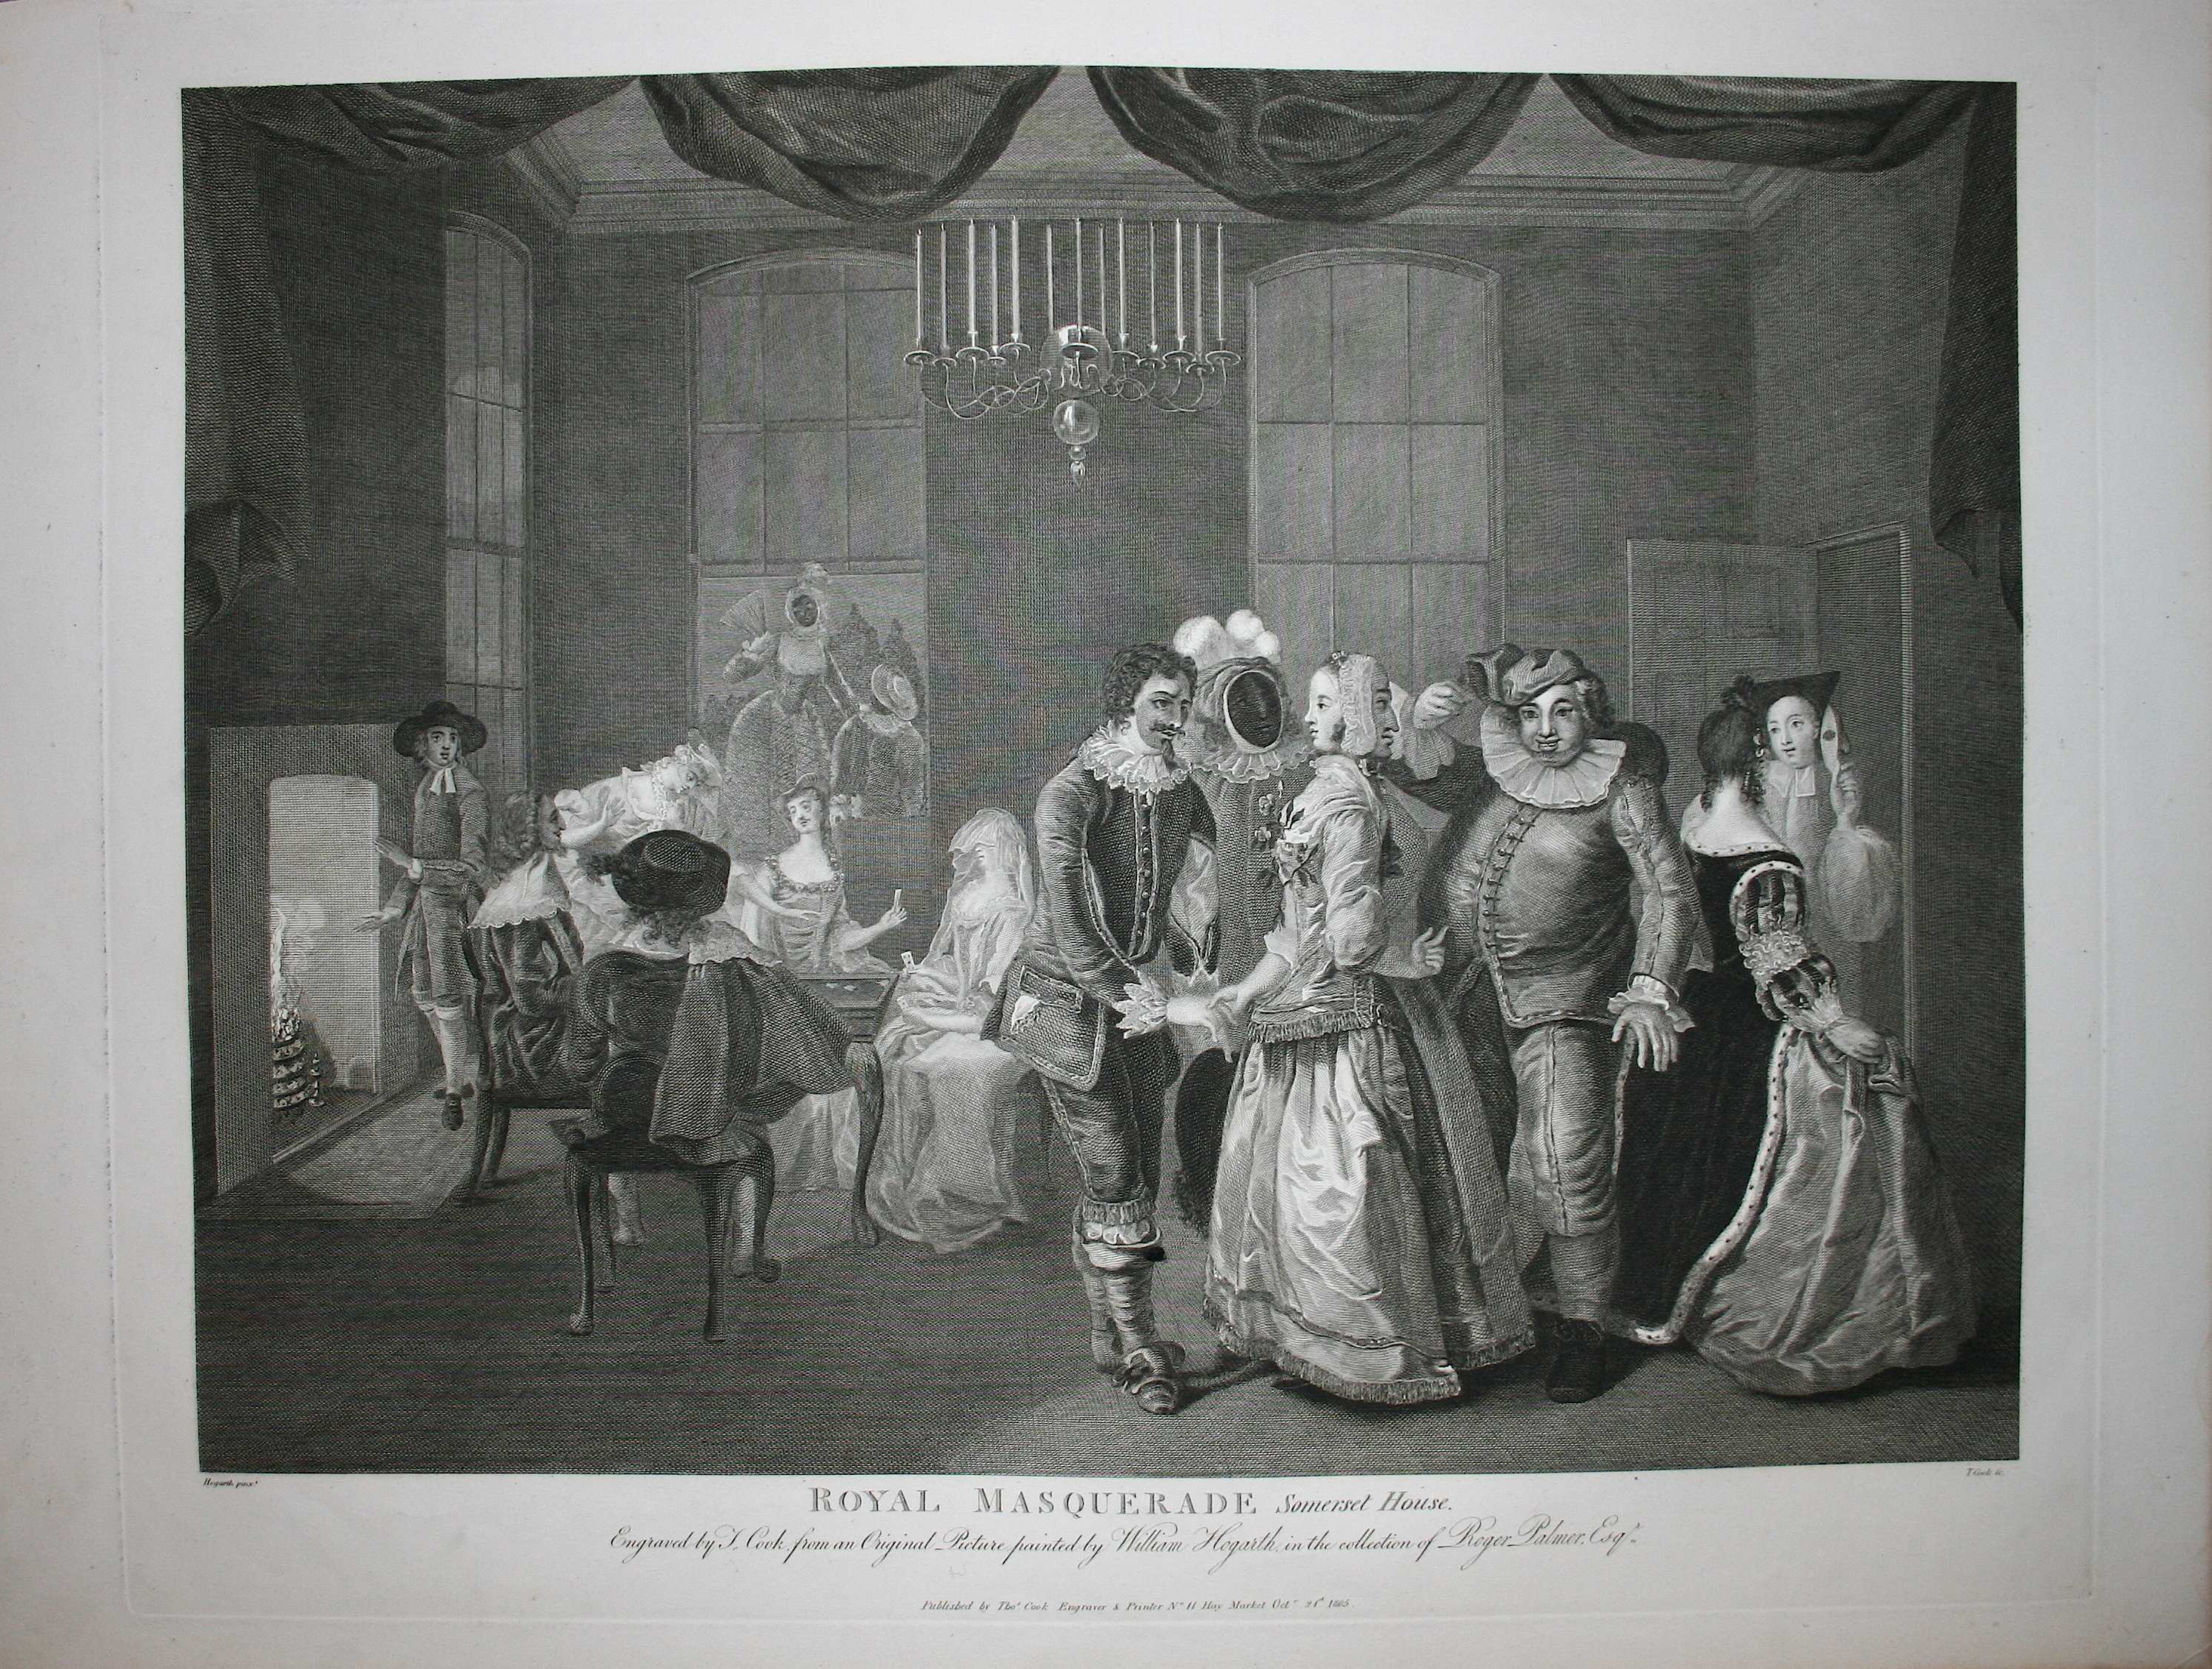 Royal masquerade - Hogarth / Heath 1822